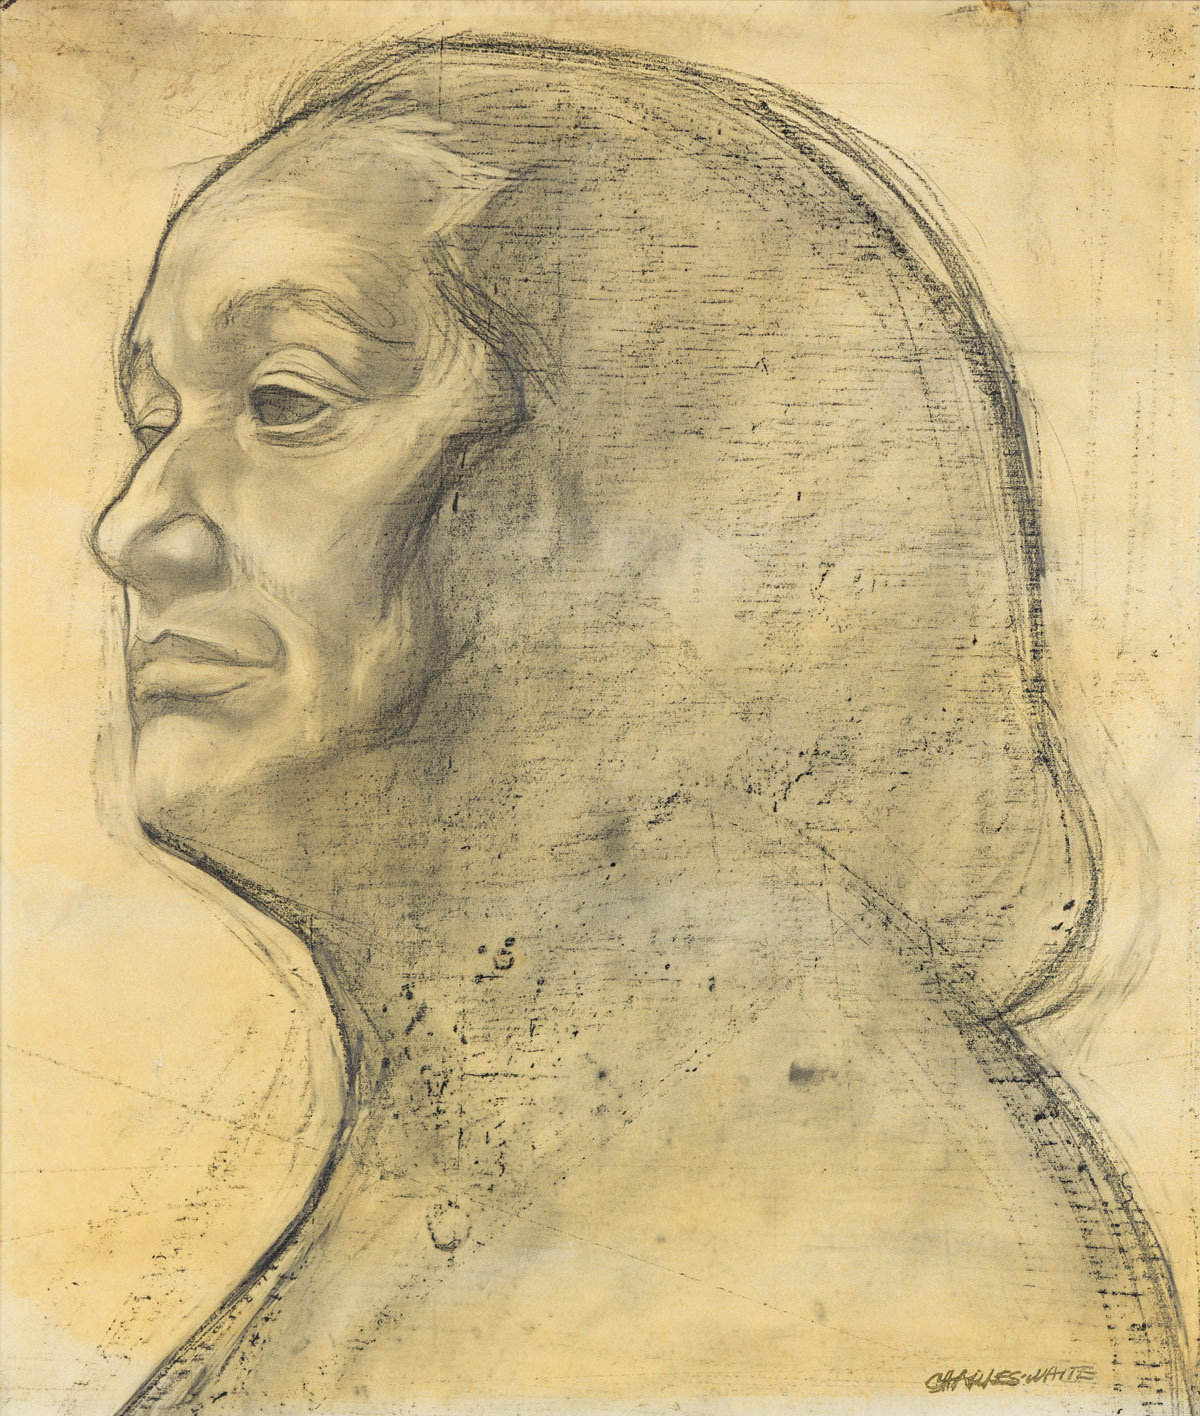 CHARLES WHITE (1918 - 1979) Untitled (Study for Matriarch)